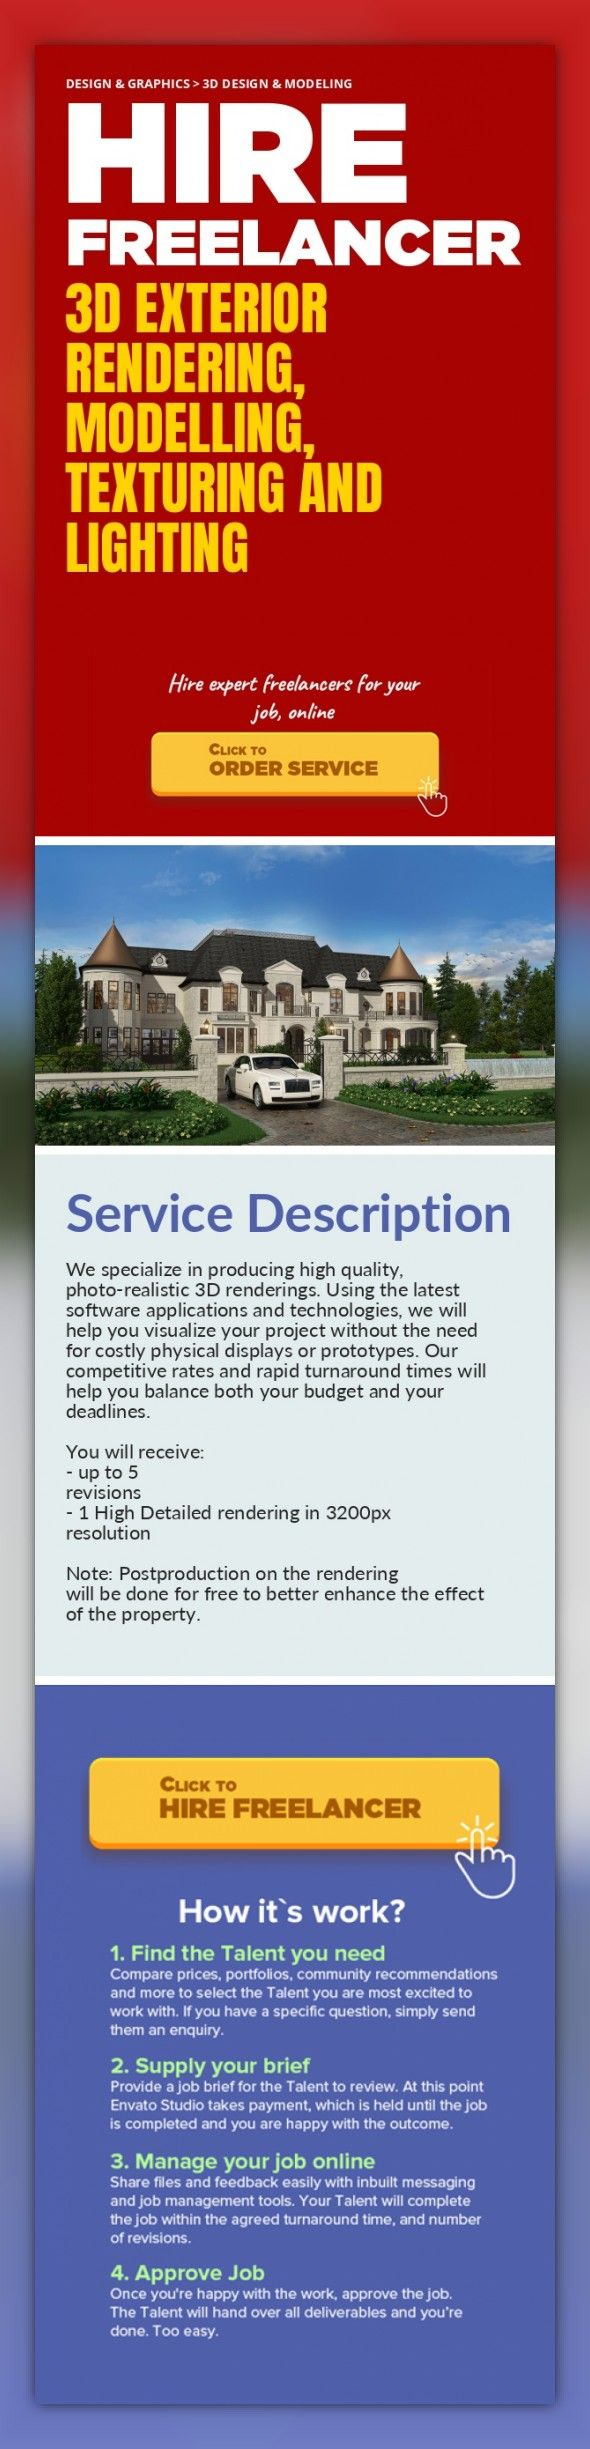 3D Exterior Rendering, Modelling, Texturing and Lighting Design & Graphics, 3D Design & Modeling   We specialize in producing high quality, photo-realistic 3D renderings. Using the latest software applications and technologies, we will help you visualize your project without the need for costly physical displays or prototypes. Our competitive rates and rapid turnaround times will help you balance ...